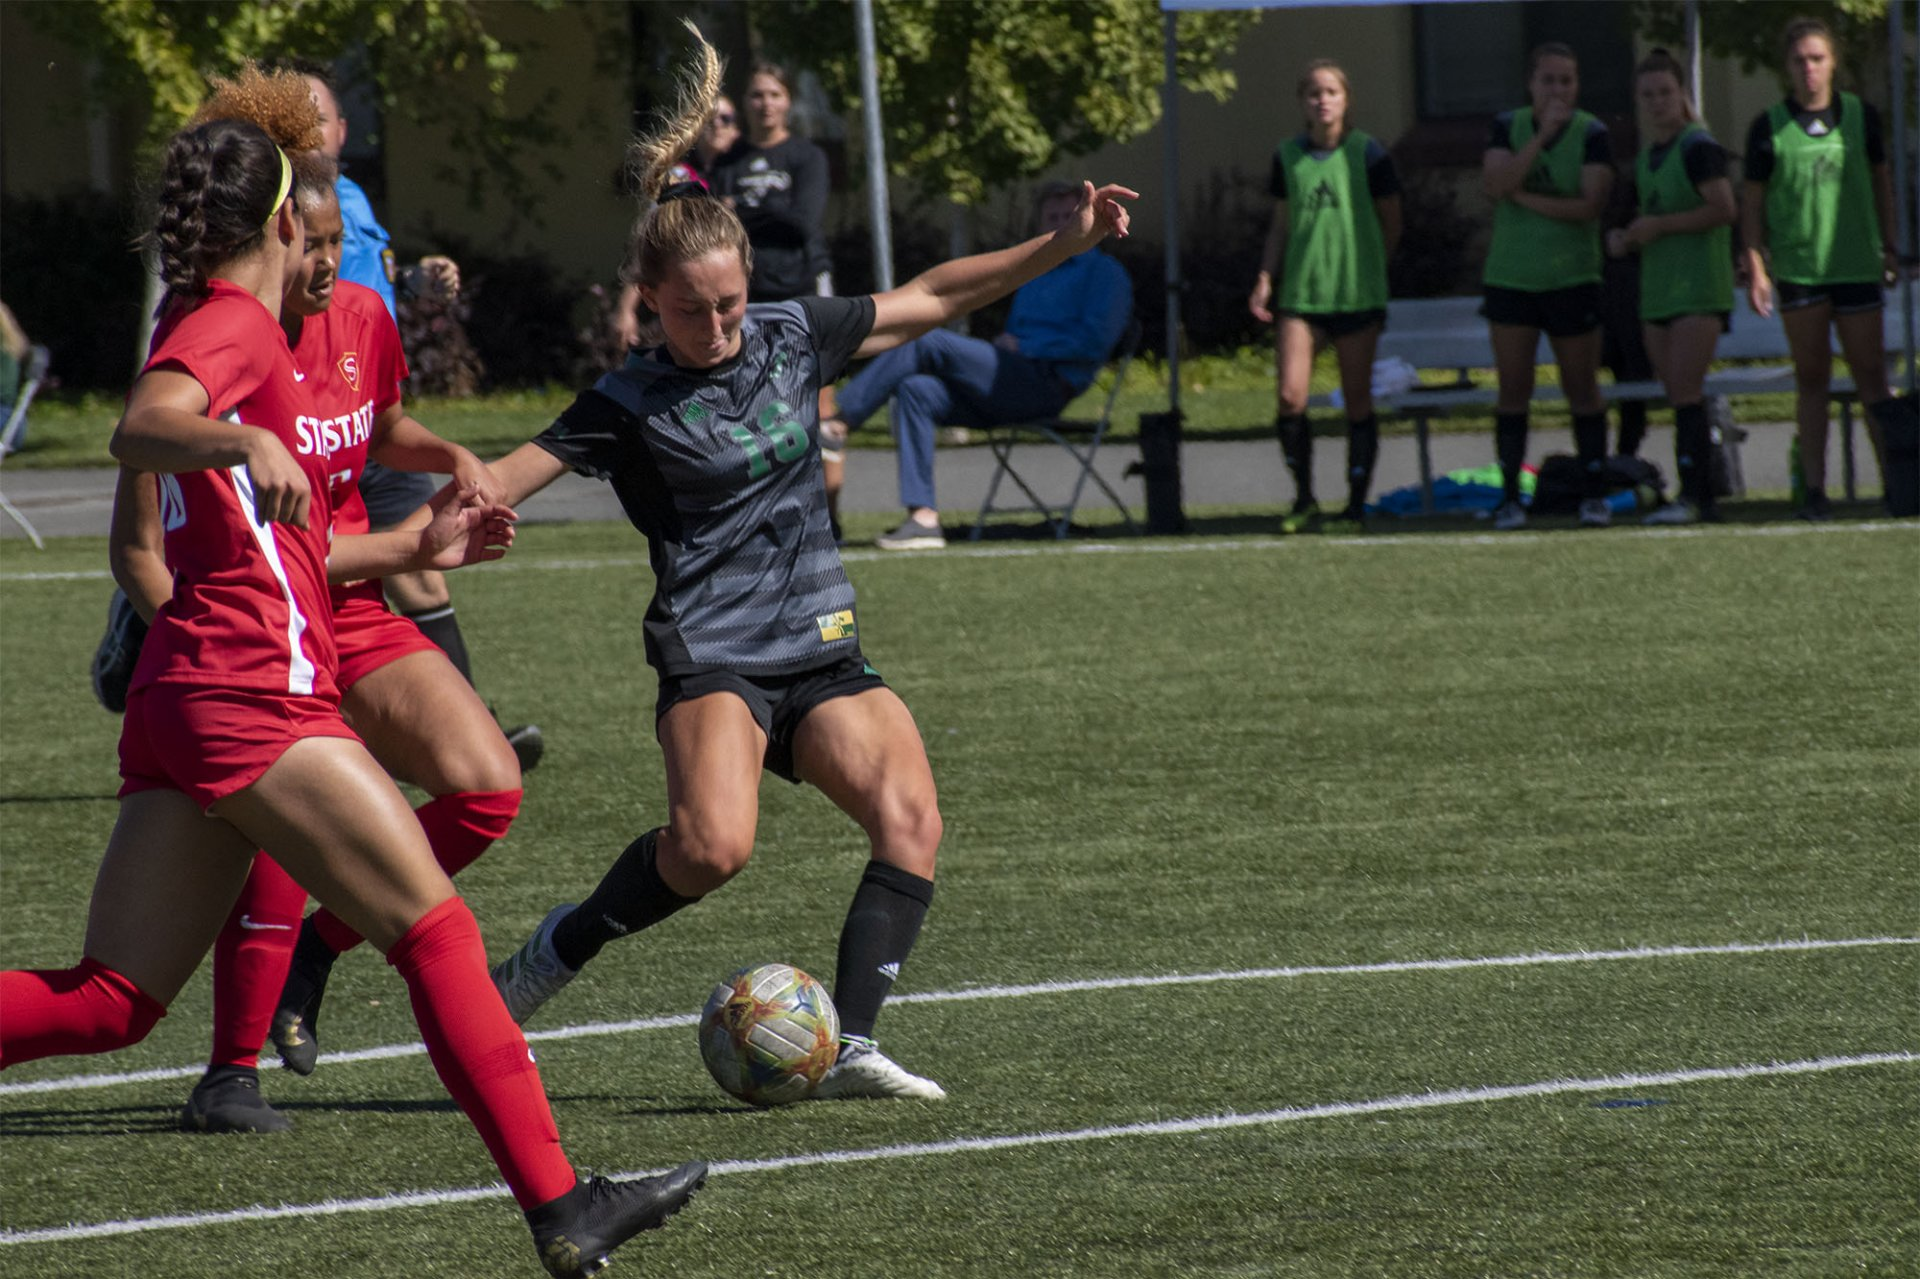 Jacks midfielder #16 Sabine Postma gets off a shot while being draped by Warrior defenders. Humboldt State played Stanislaus State at College Creek Field in Arcata and lost 1-0 to the Warriors. | Photo by Liam Warner